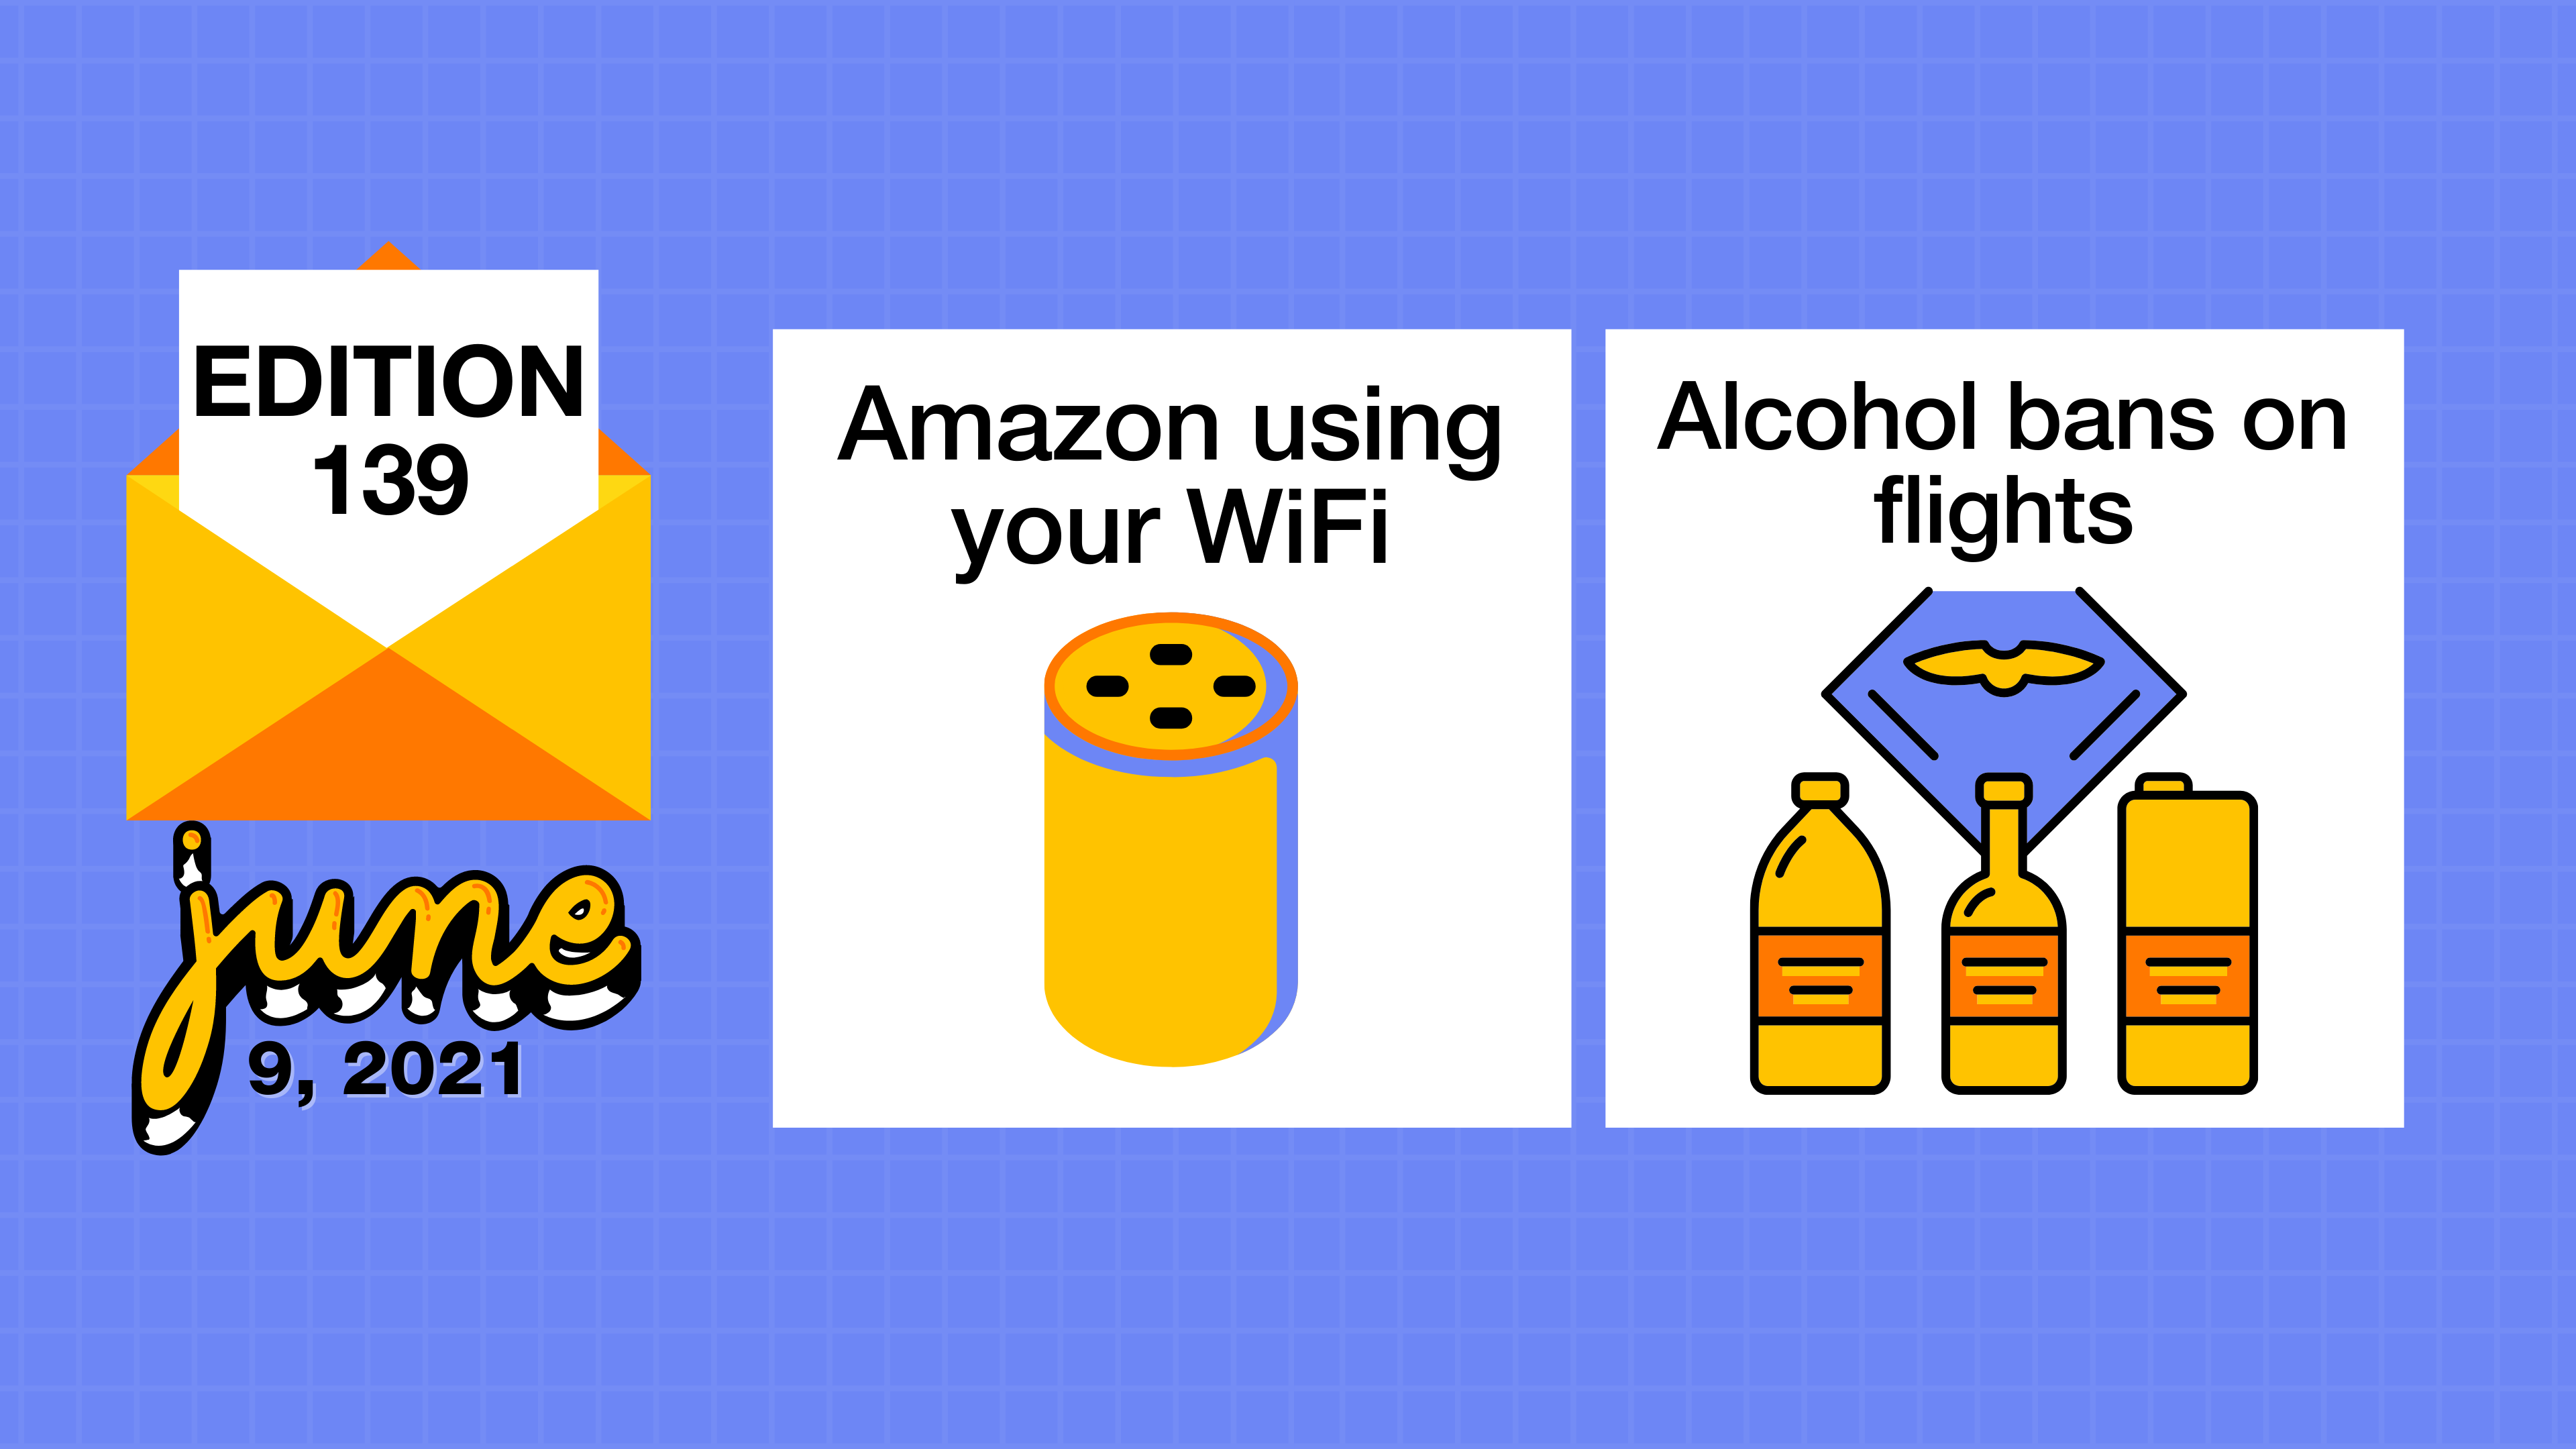 Amazon using your WiFi and potential alcohol bans on flights